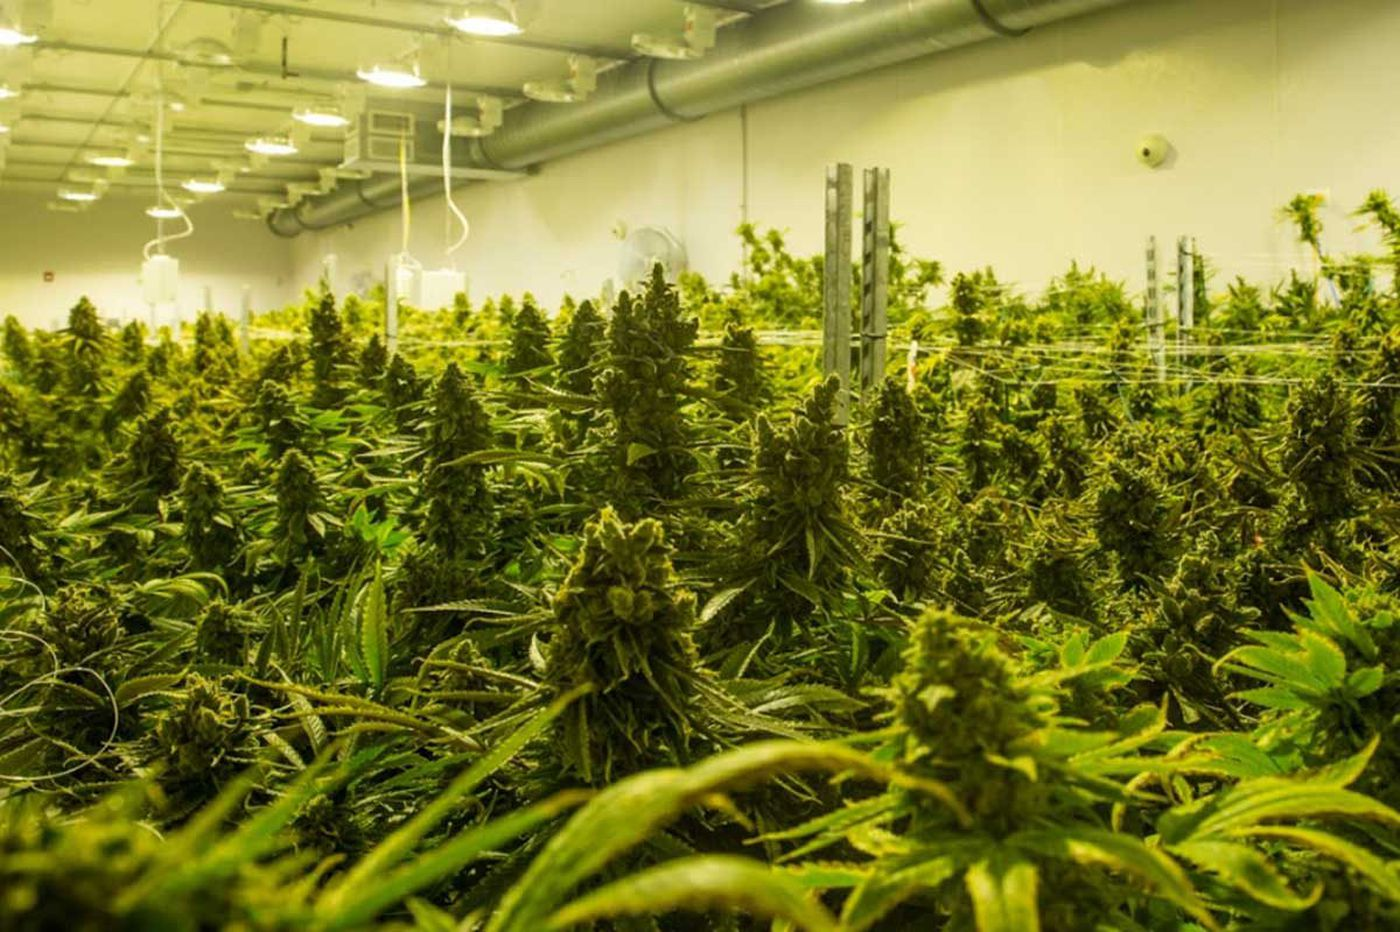 Pa. has approved all but two of 12 marijuana growers; Lower Merion gives OK for dispensary